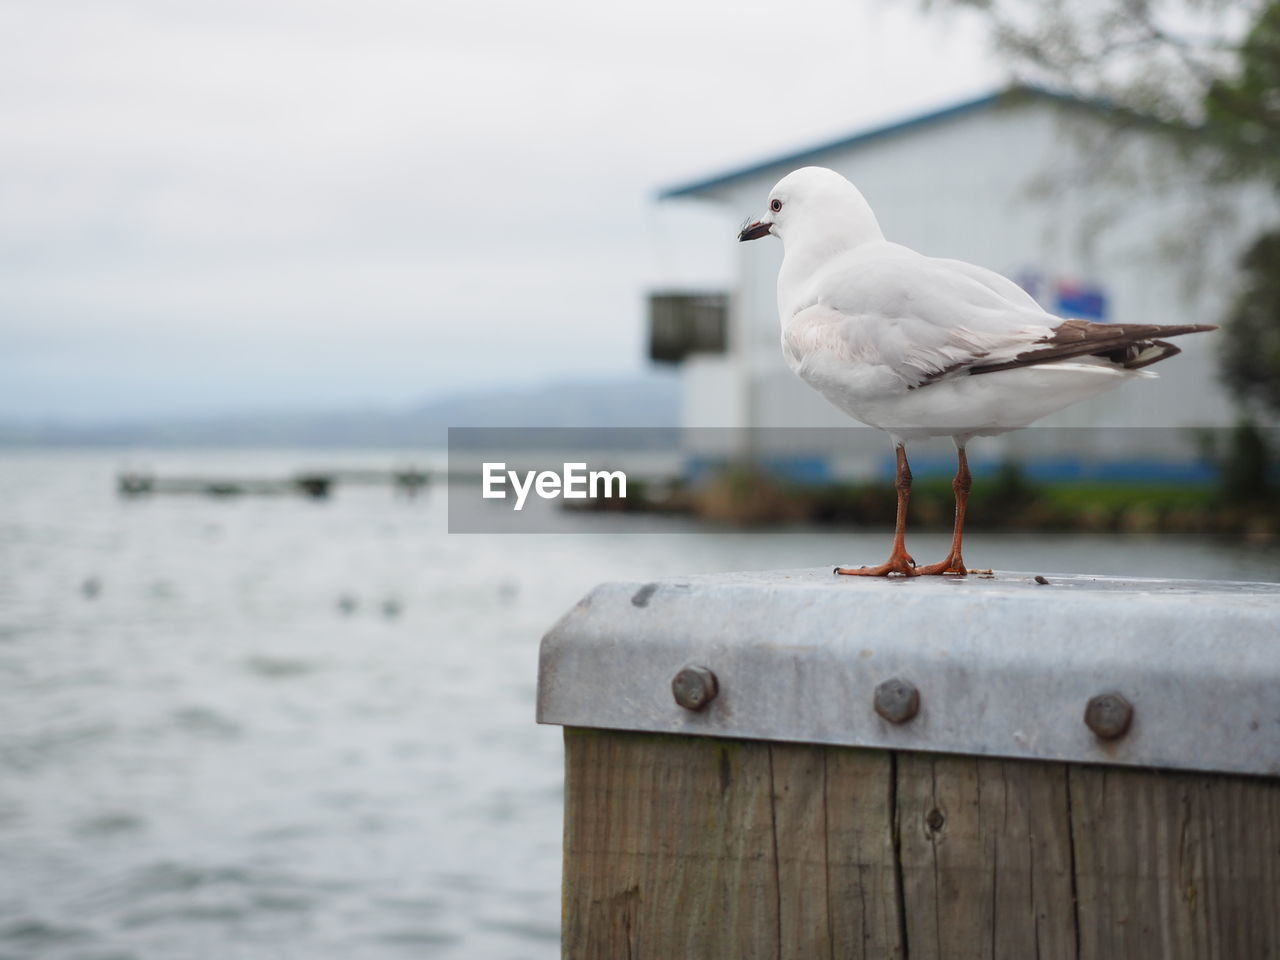 bird, animal themes, animal, water, vertebrate, animals in the wild, one animal, seagull, sea, perching, animal wildlife, focus on foreground, day, no people, wood - material, nature, sea bird, outdoors, wall, post, wooden post